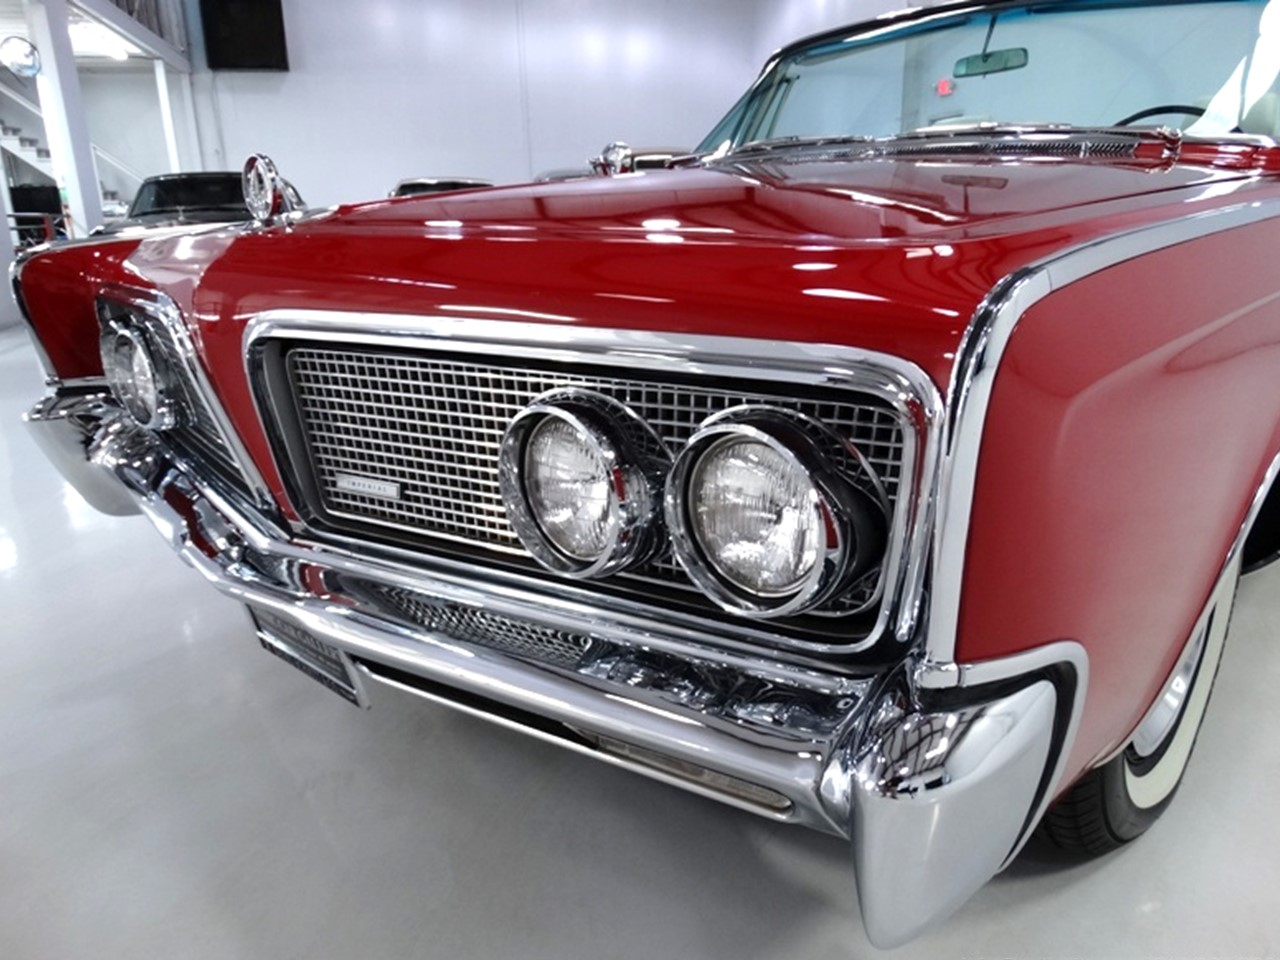 The Majestic 1964 Imperial Crown Convertible – NotoriousLuxury